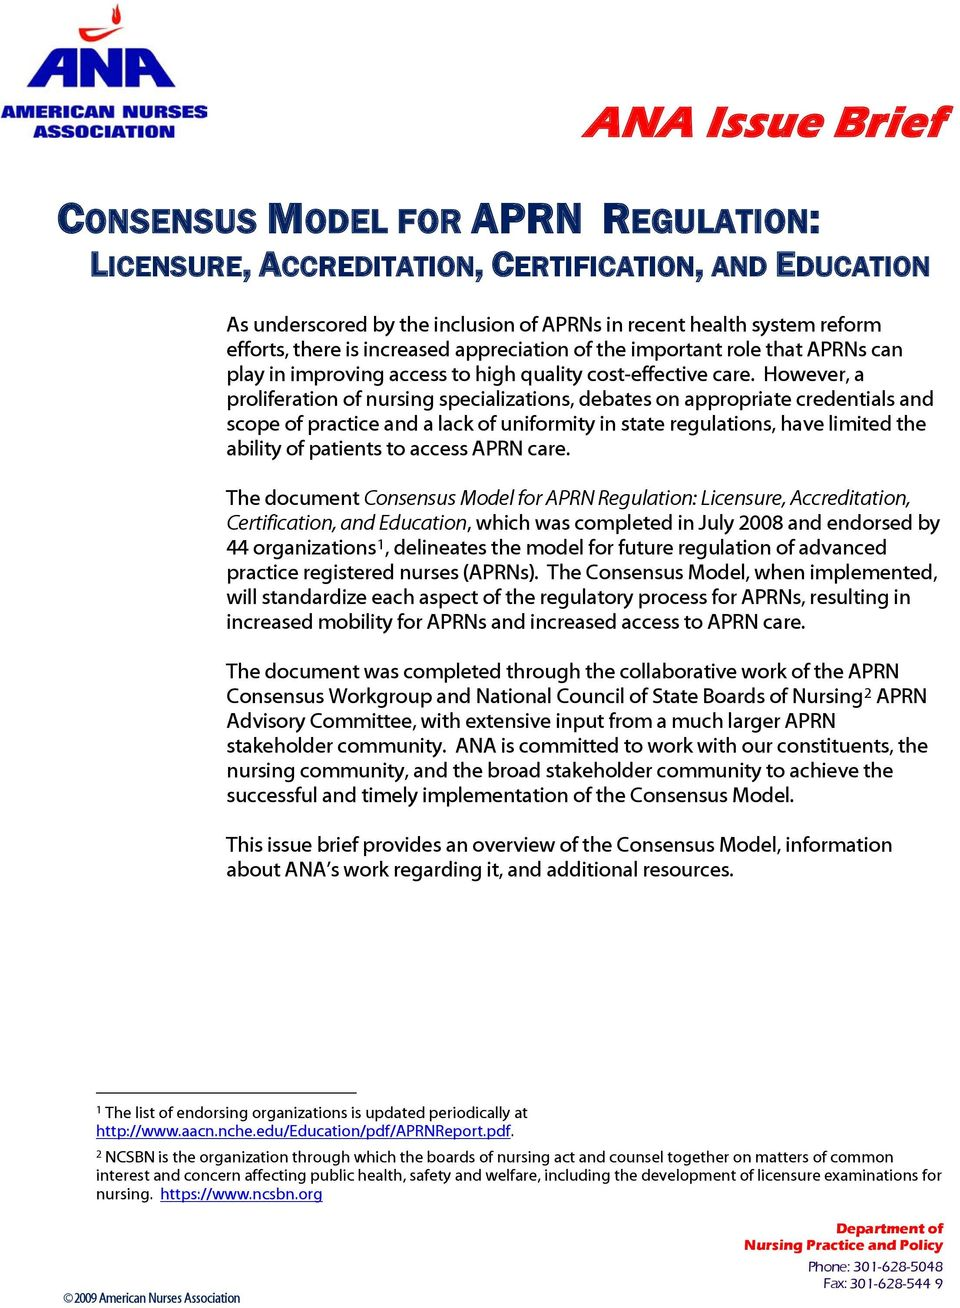 This Issue Brief Provides An Overview Of The Consensus Model